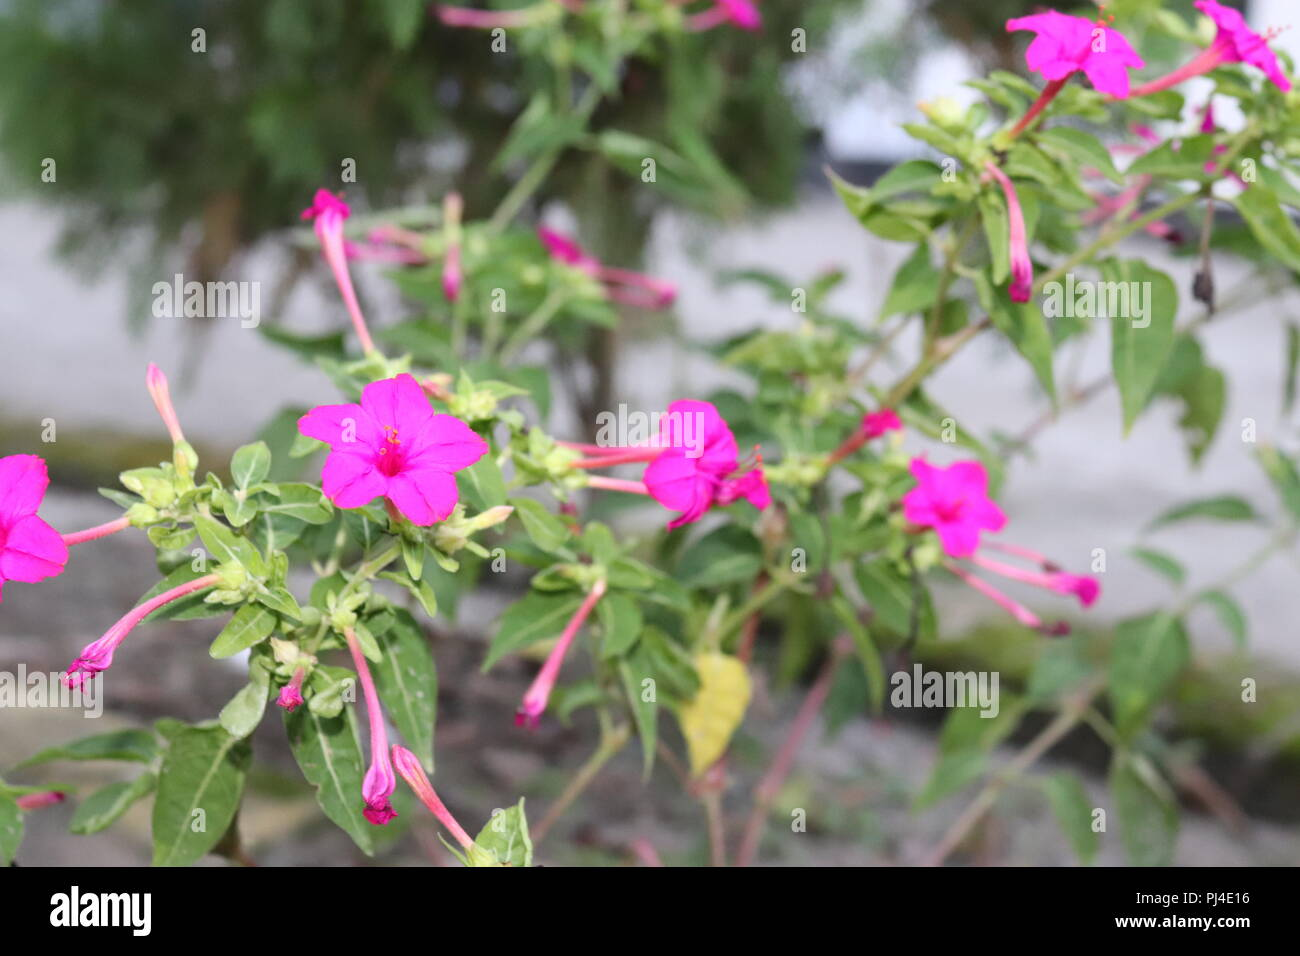 Most beautiful and amazing flowers with leaf and flower treewhite most beautiful and amazing flowers with leaf and flower treewhite and pink color flower on blur background with leafazingly beautiful flowers pic izmirmasajfo